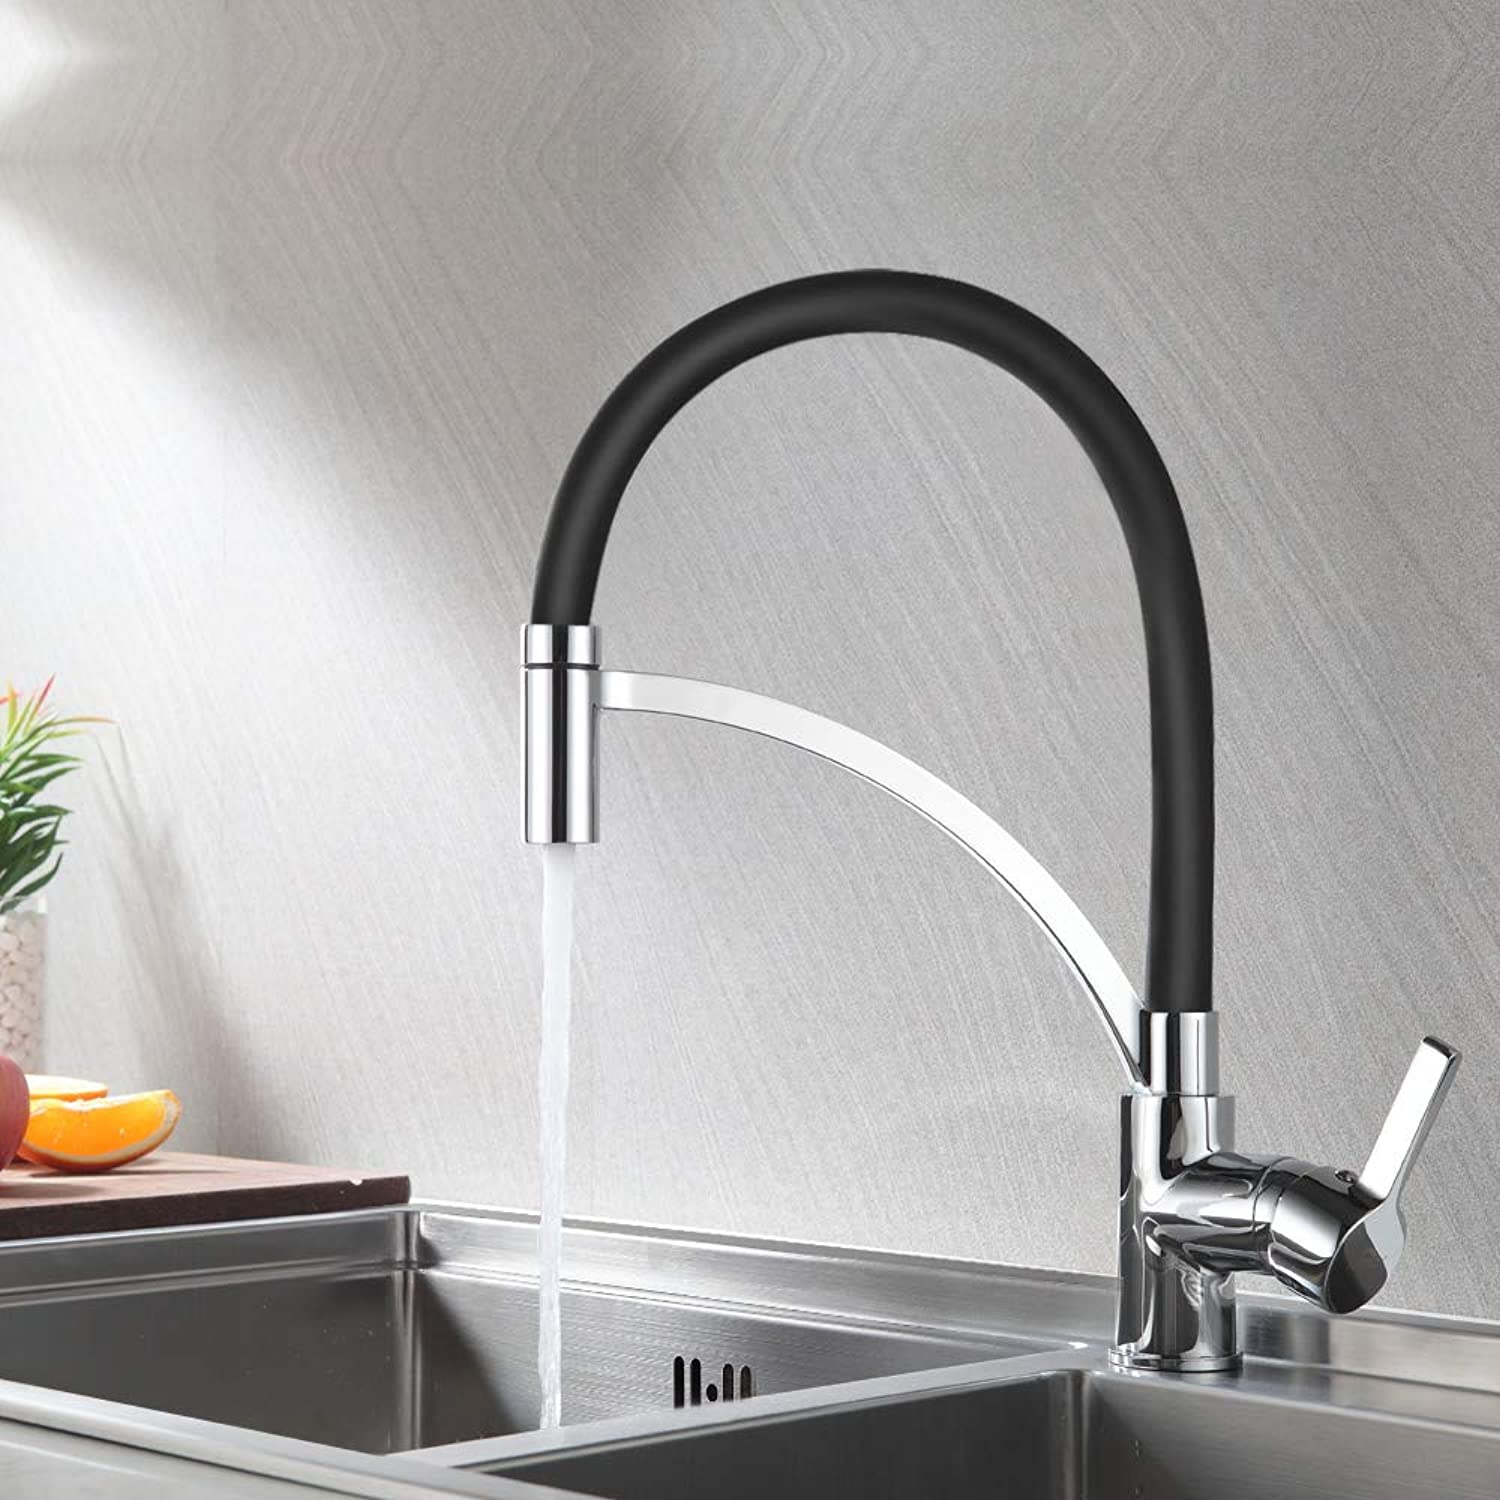 Auralum Kitchen Single-Lever Mixer Tap with Pivoting Spout Mixer Tap Single Lever Kitchen Sink Mixer Tap